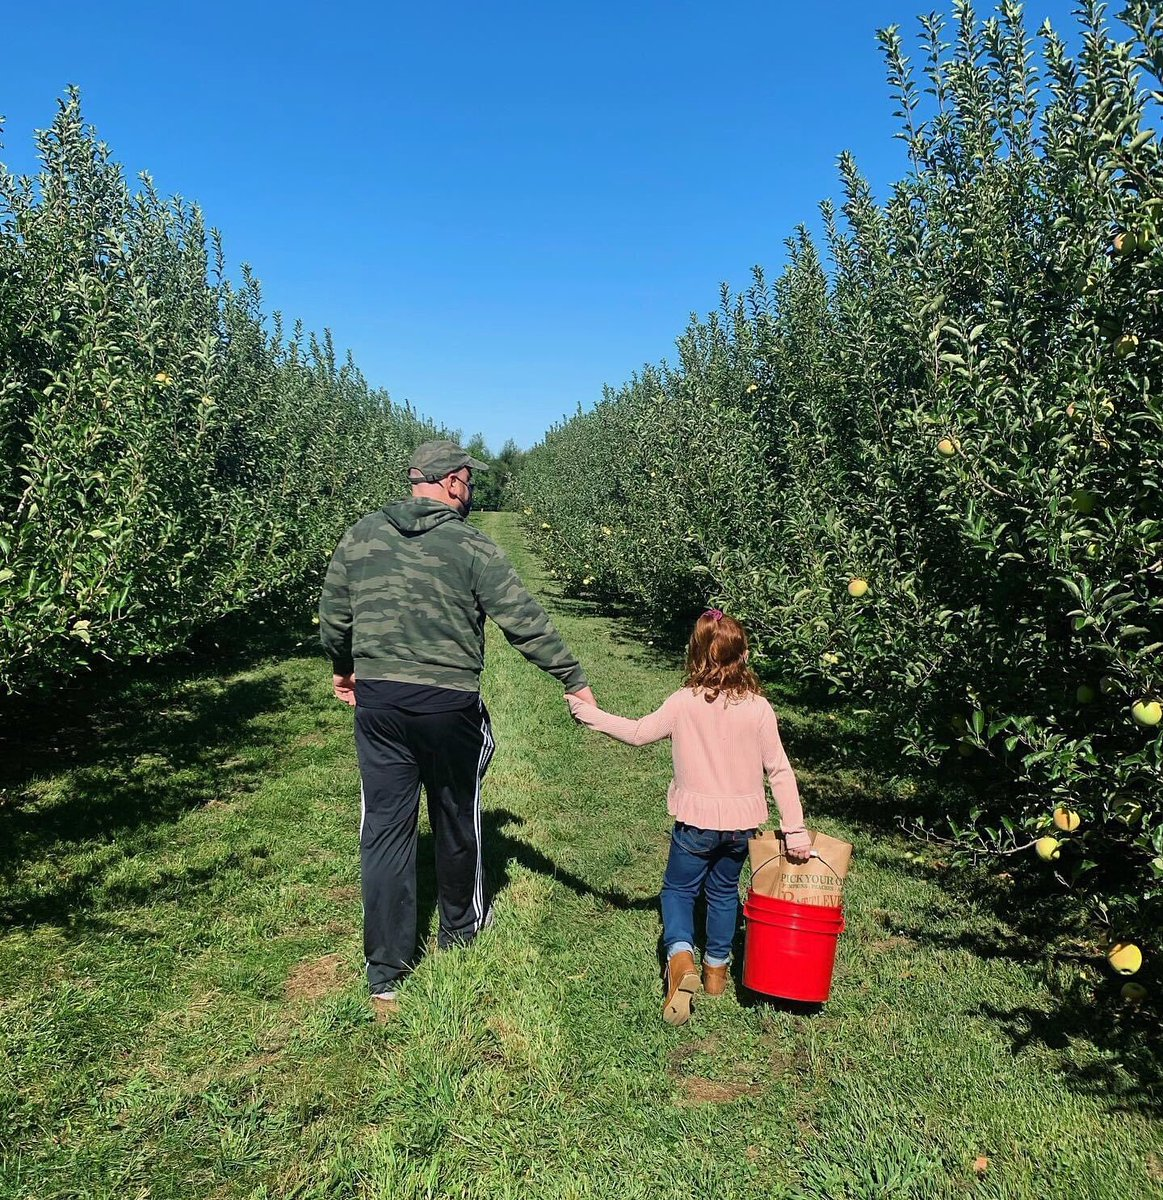 Picking apples and making memories in #MonmouthCounty! 🍎